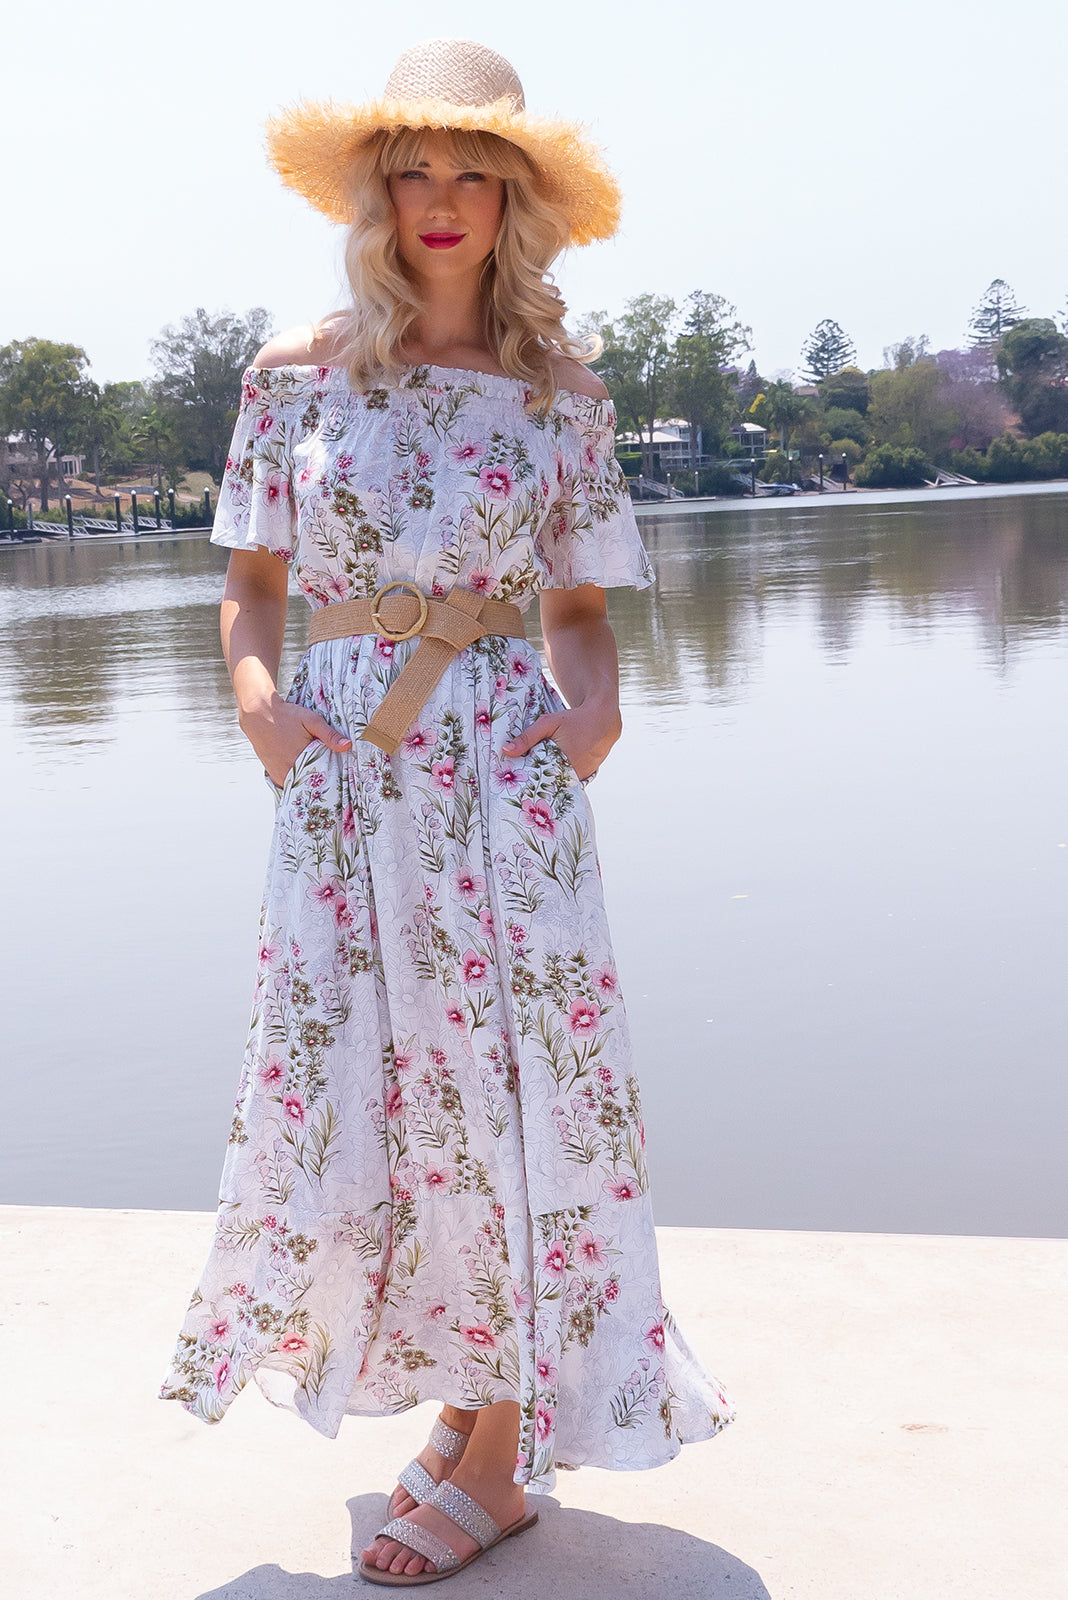 Surfmist Coconut Ice Maxi Dress, bohemian summer style, 100% rayon, off the shoulder style, soft elastic ruching gently holds dress across the shoulders, side pockets, elastic waist, soft white base with medium fuchsia, soft pink and khaki floral print.